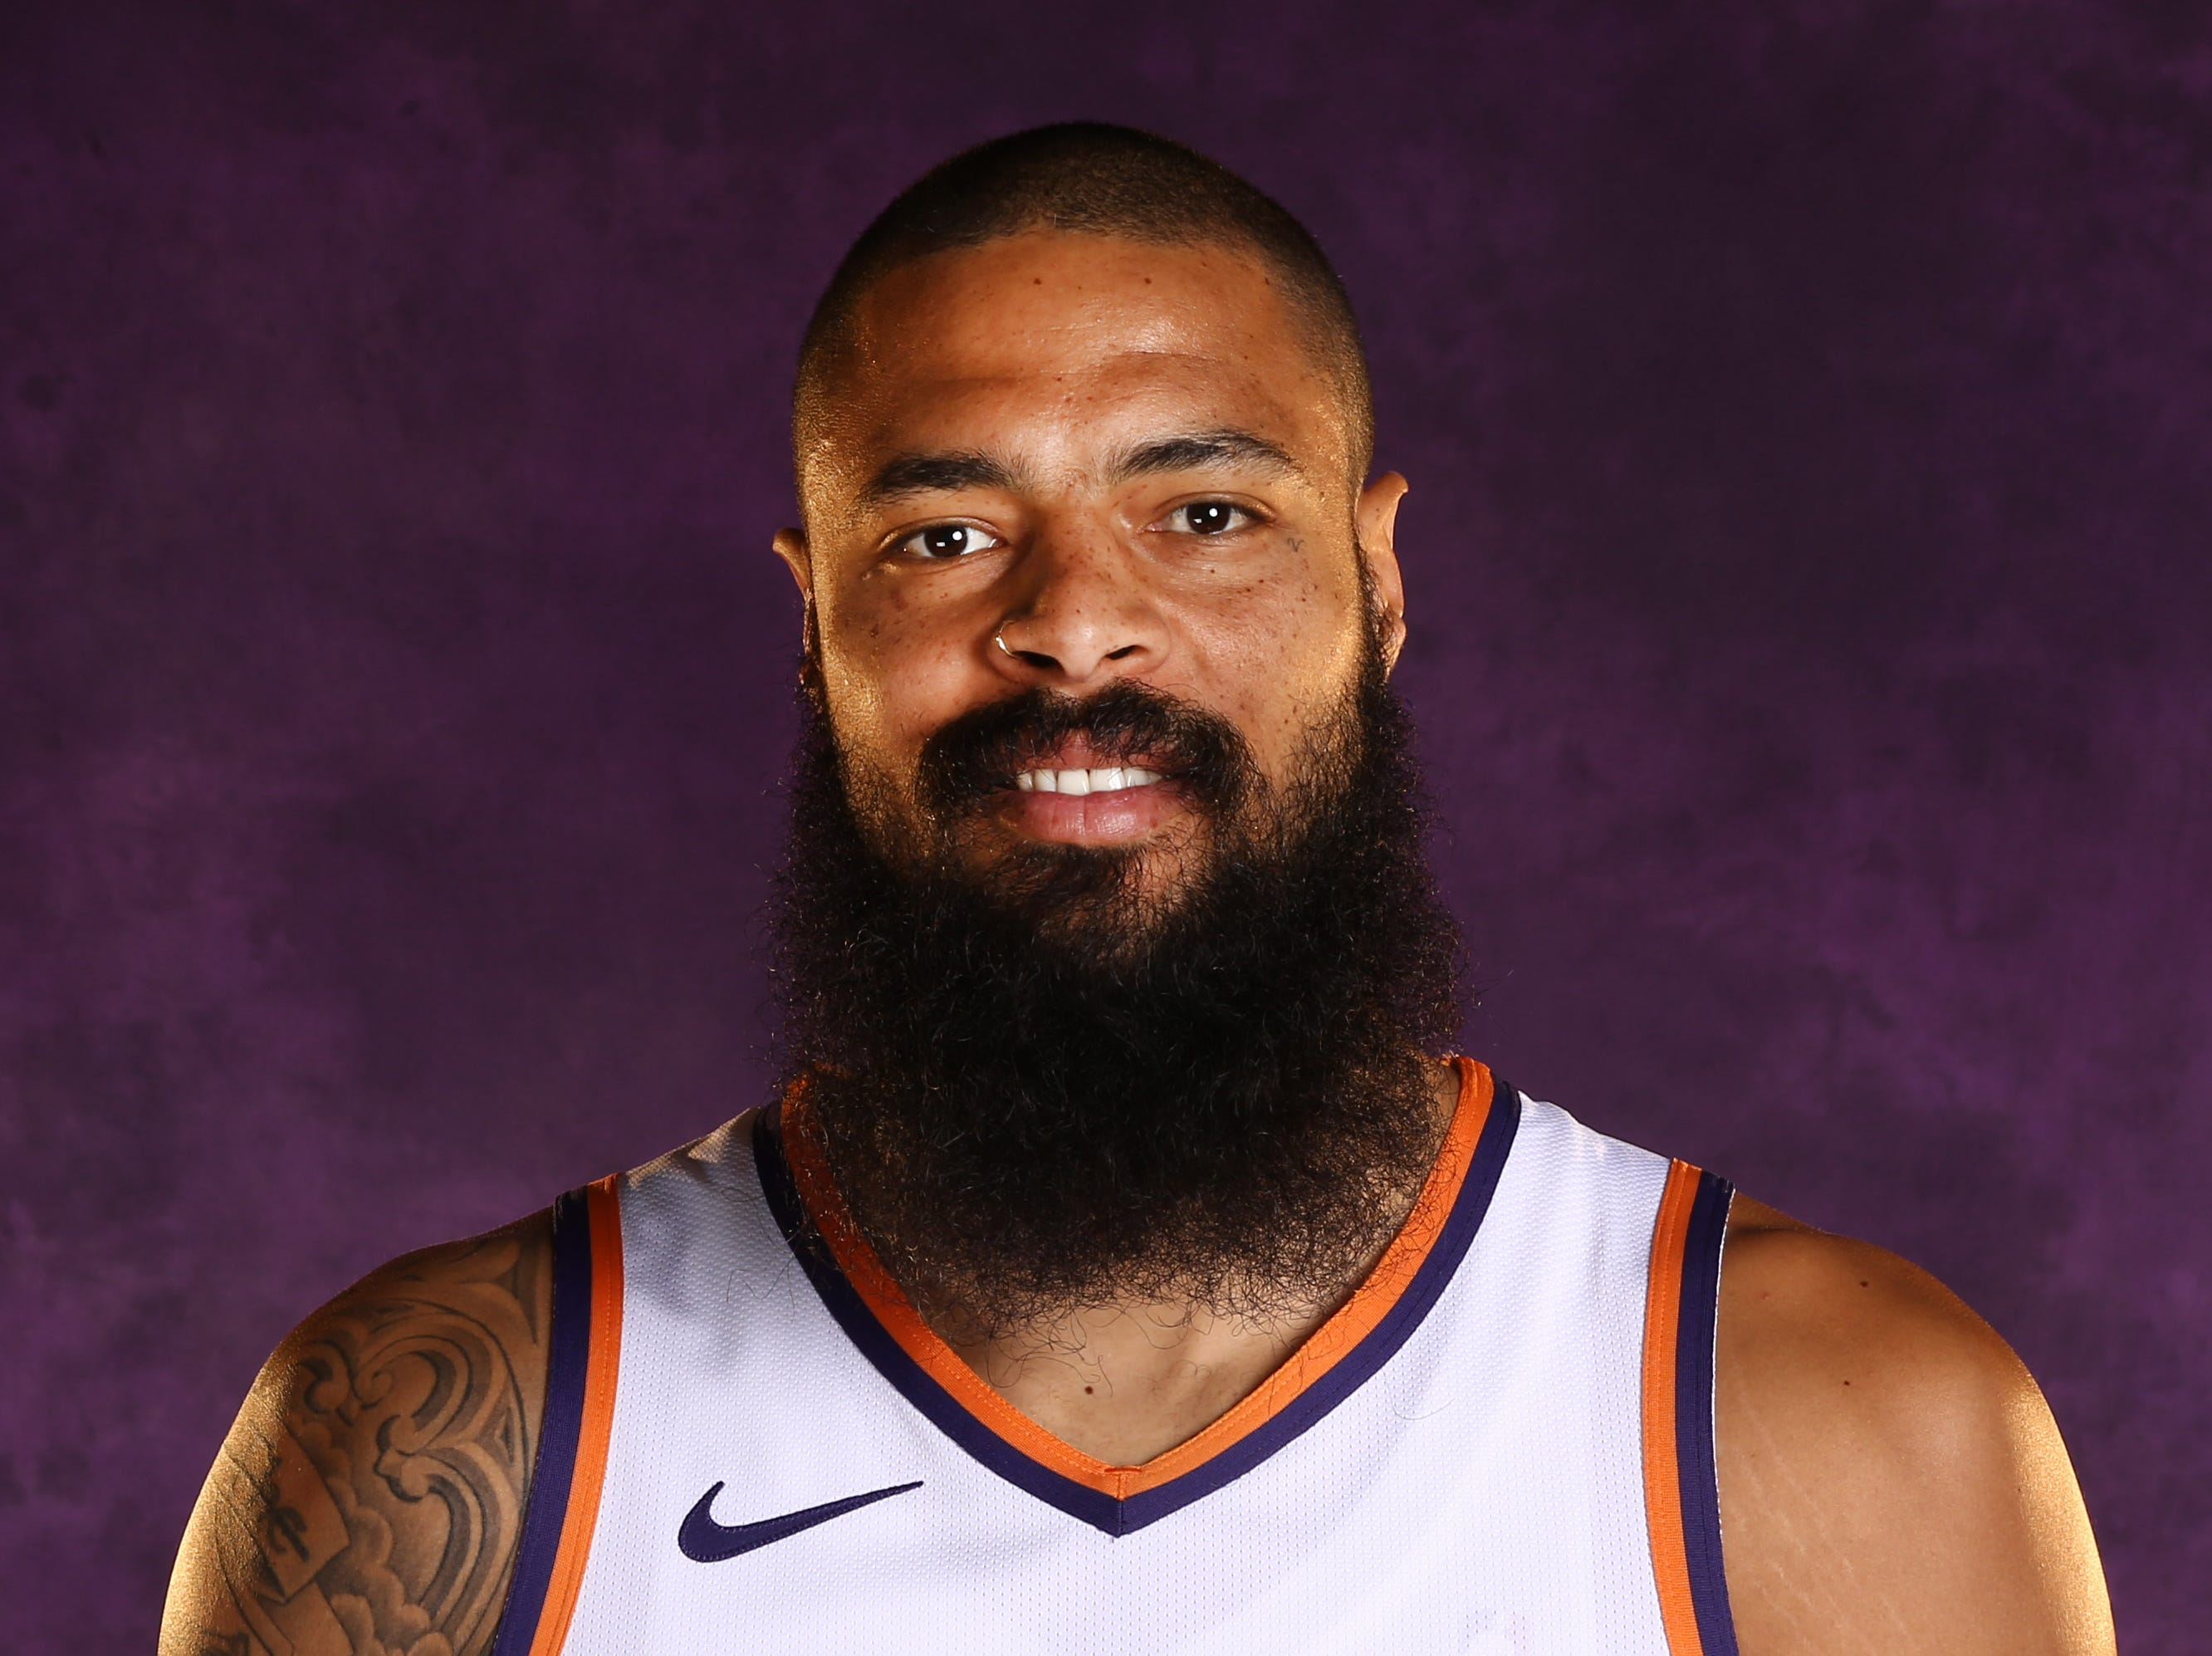 Tyson Chandler || Position: Center || Height/Weight: 7-1, 240